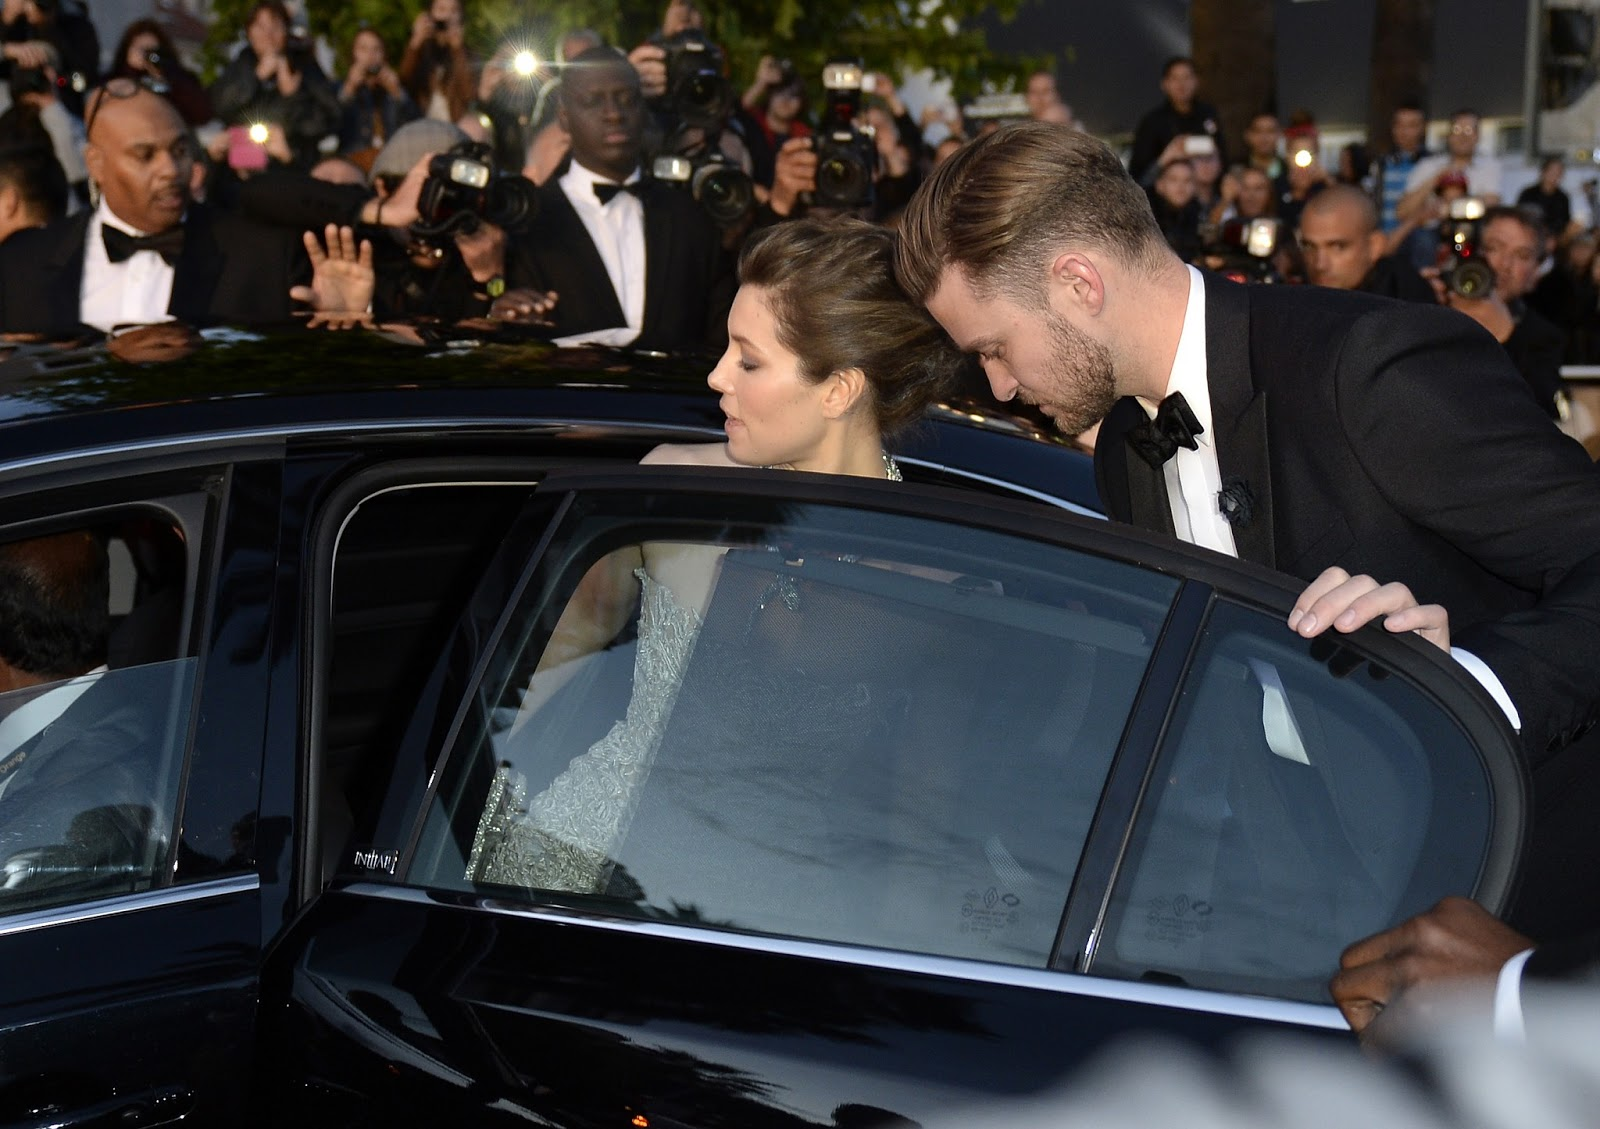 Actor, Actress, Awards, Cannes Festival, Cannes Film Festival, Entertainment, Film, Film Festival, France, Hollywood, Hollywood Actress, Justin Timberlake, Marion Cotillard, Showbiz,